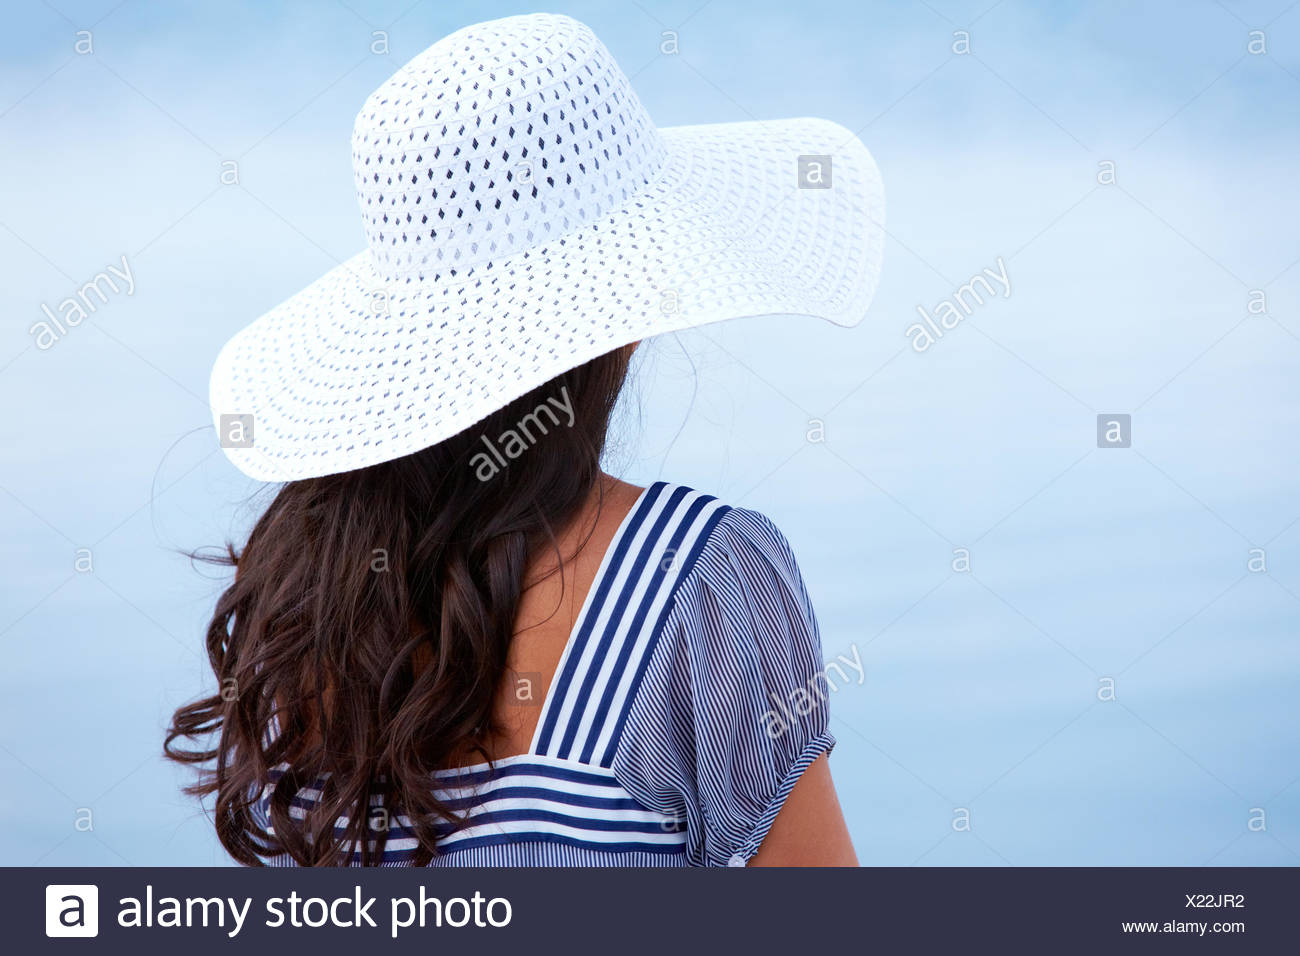 woman, blue, humans, human beings, people, folk, persons, human, human being, - Stock Image